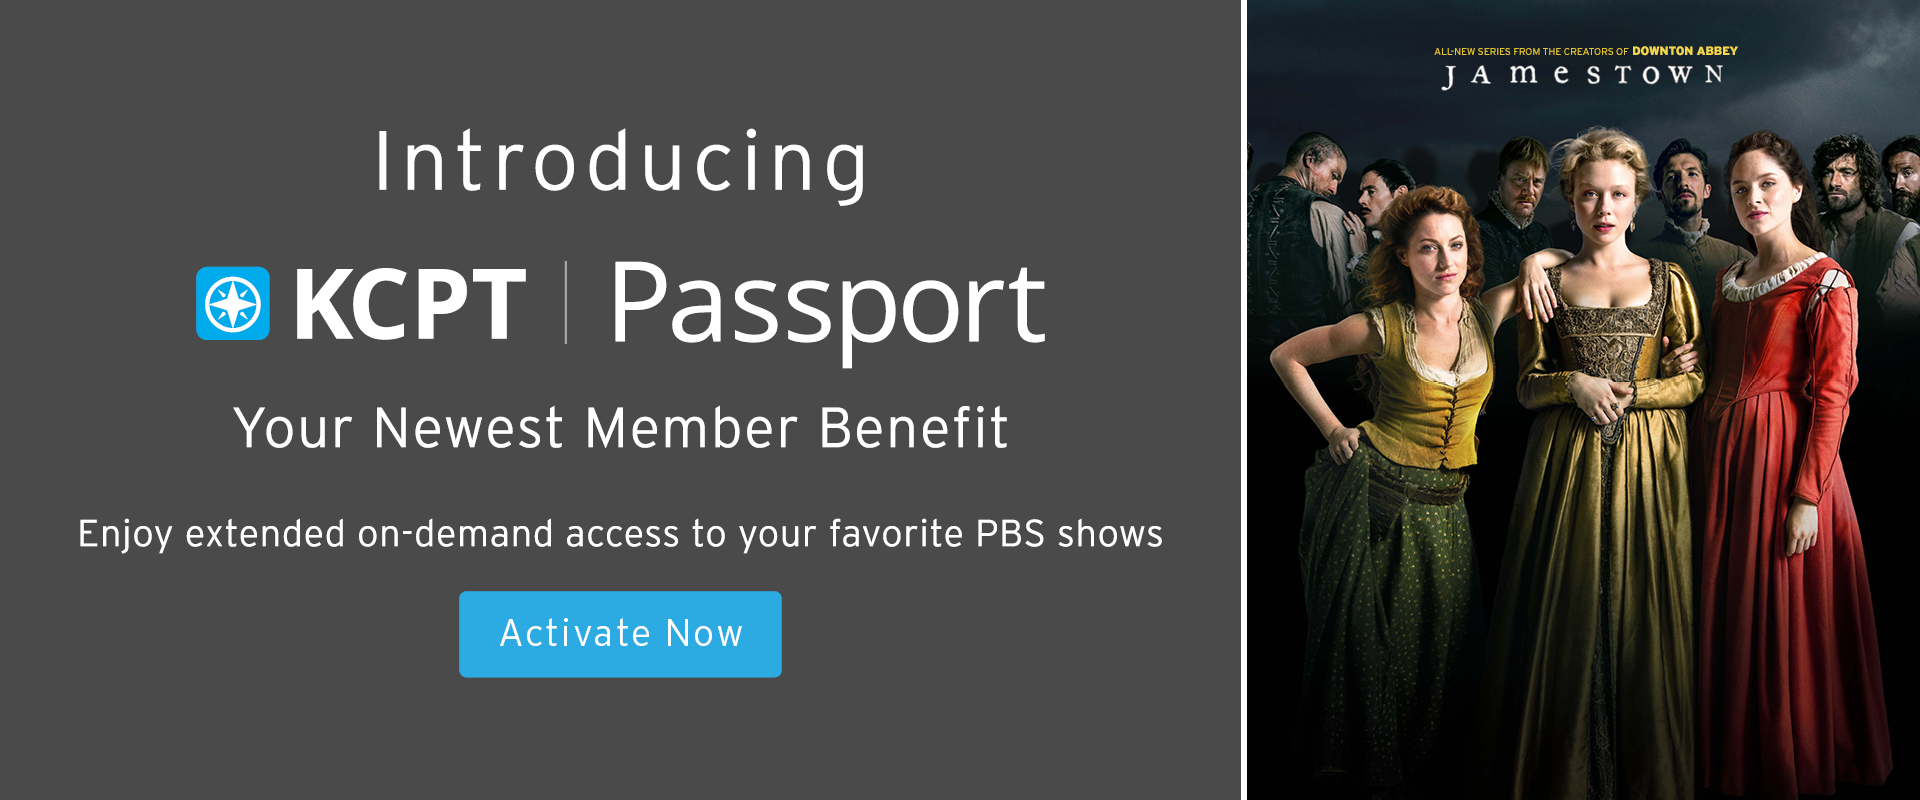 Introducing KCPT Passport Your Newest Member Benefit - Enjoy extended on-demand access to your favorite PBS shows. Activate now. Jamestown image